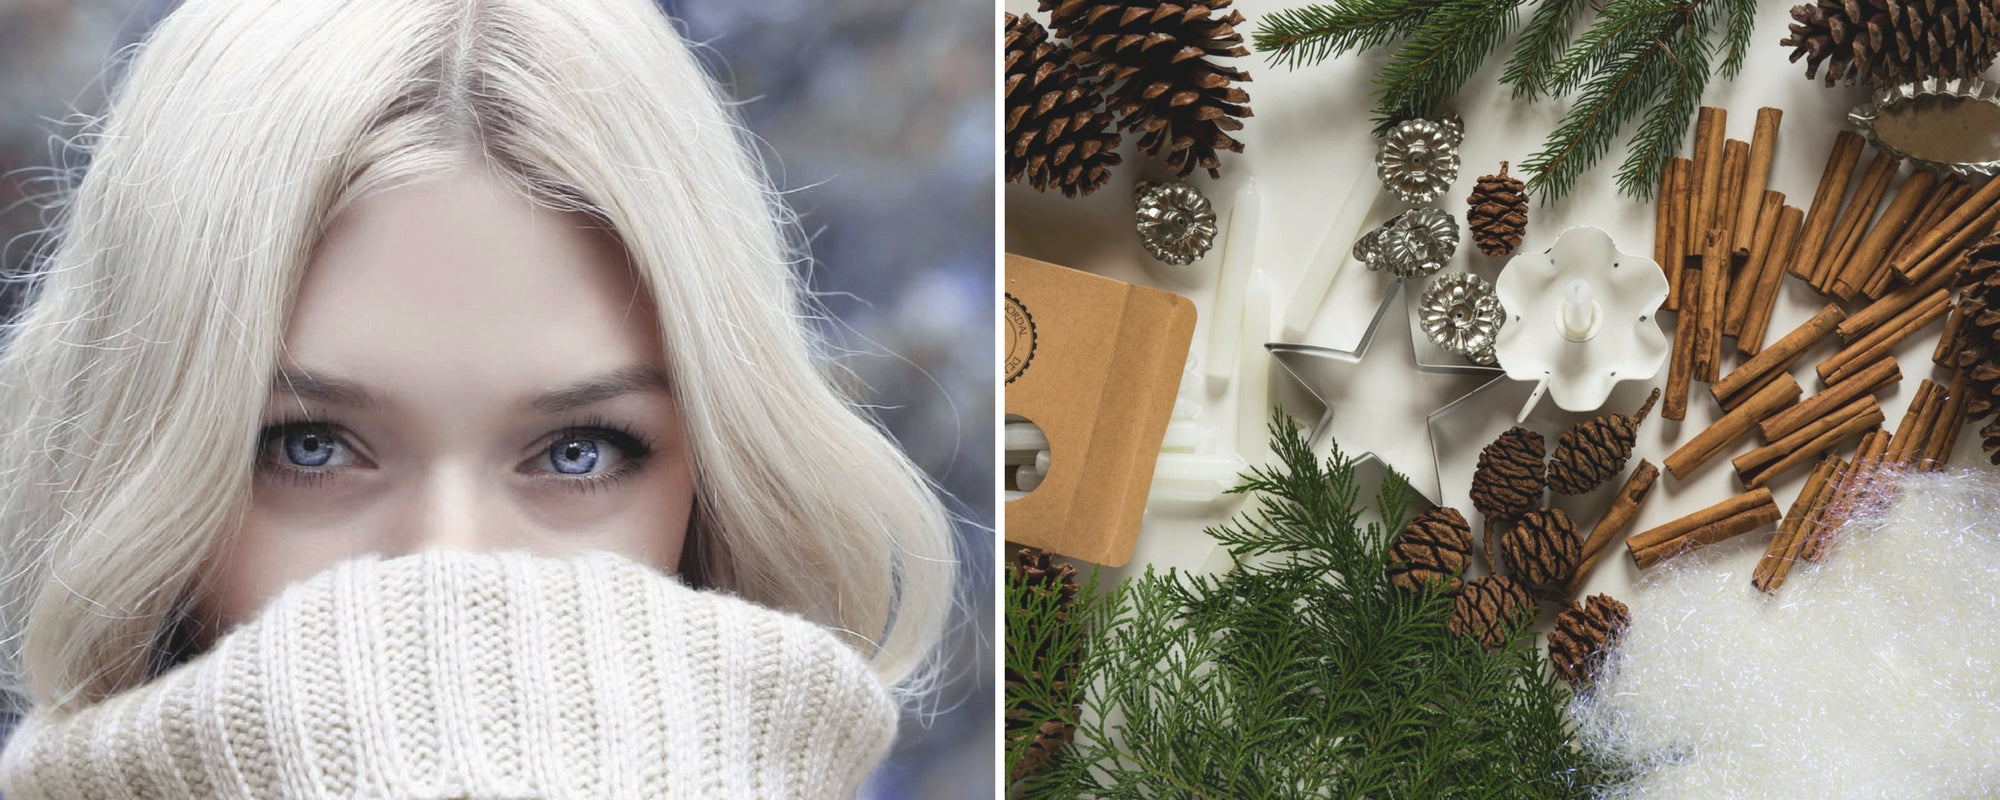 Top 6 Christmas Gifts for Beauty Lovers